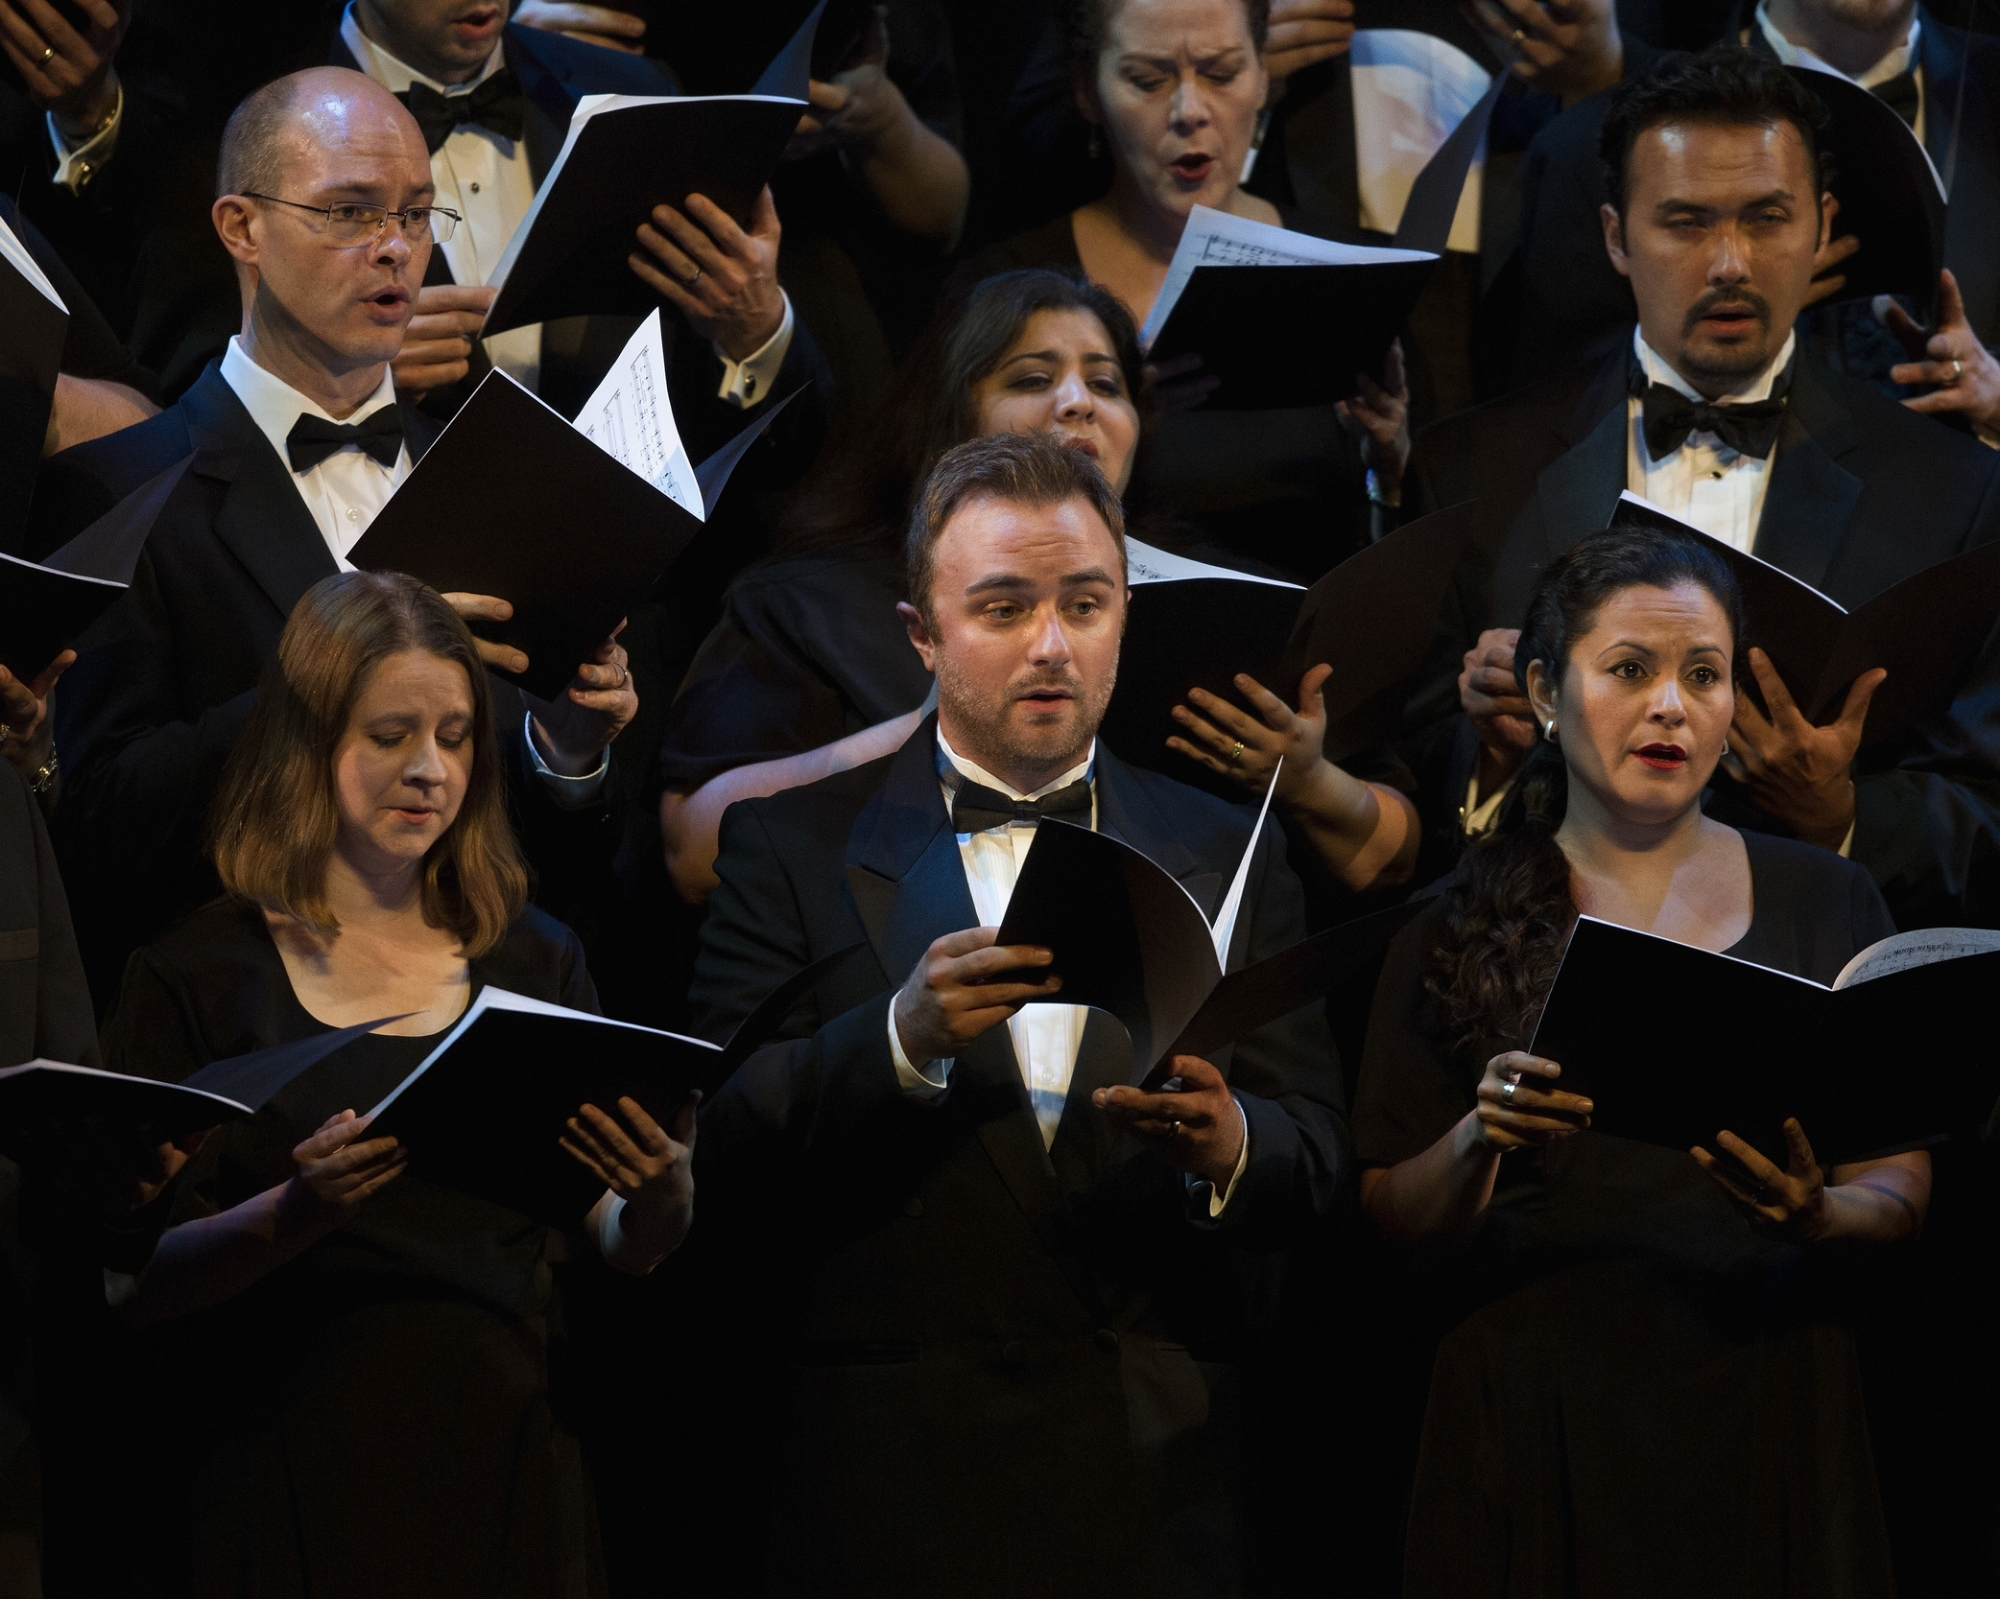 Performance by the Houston Grand Opera Chorus during The UNICEF Audrey Hepburn® Society Ball at Wortham Center on September 6, 2013 in Houston, Texas. (Photo by Bob Levey/Getty Images for UNICEF)